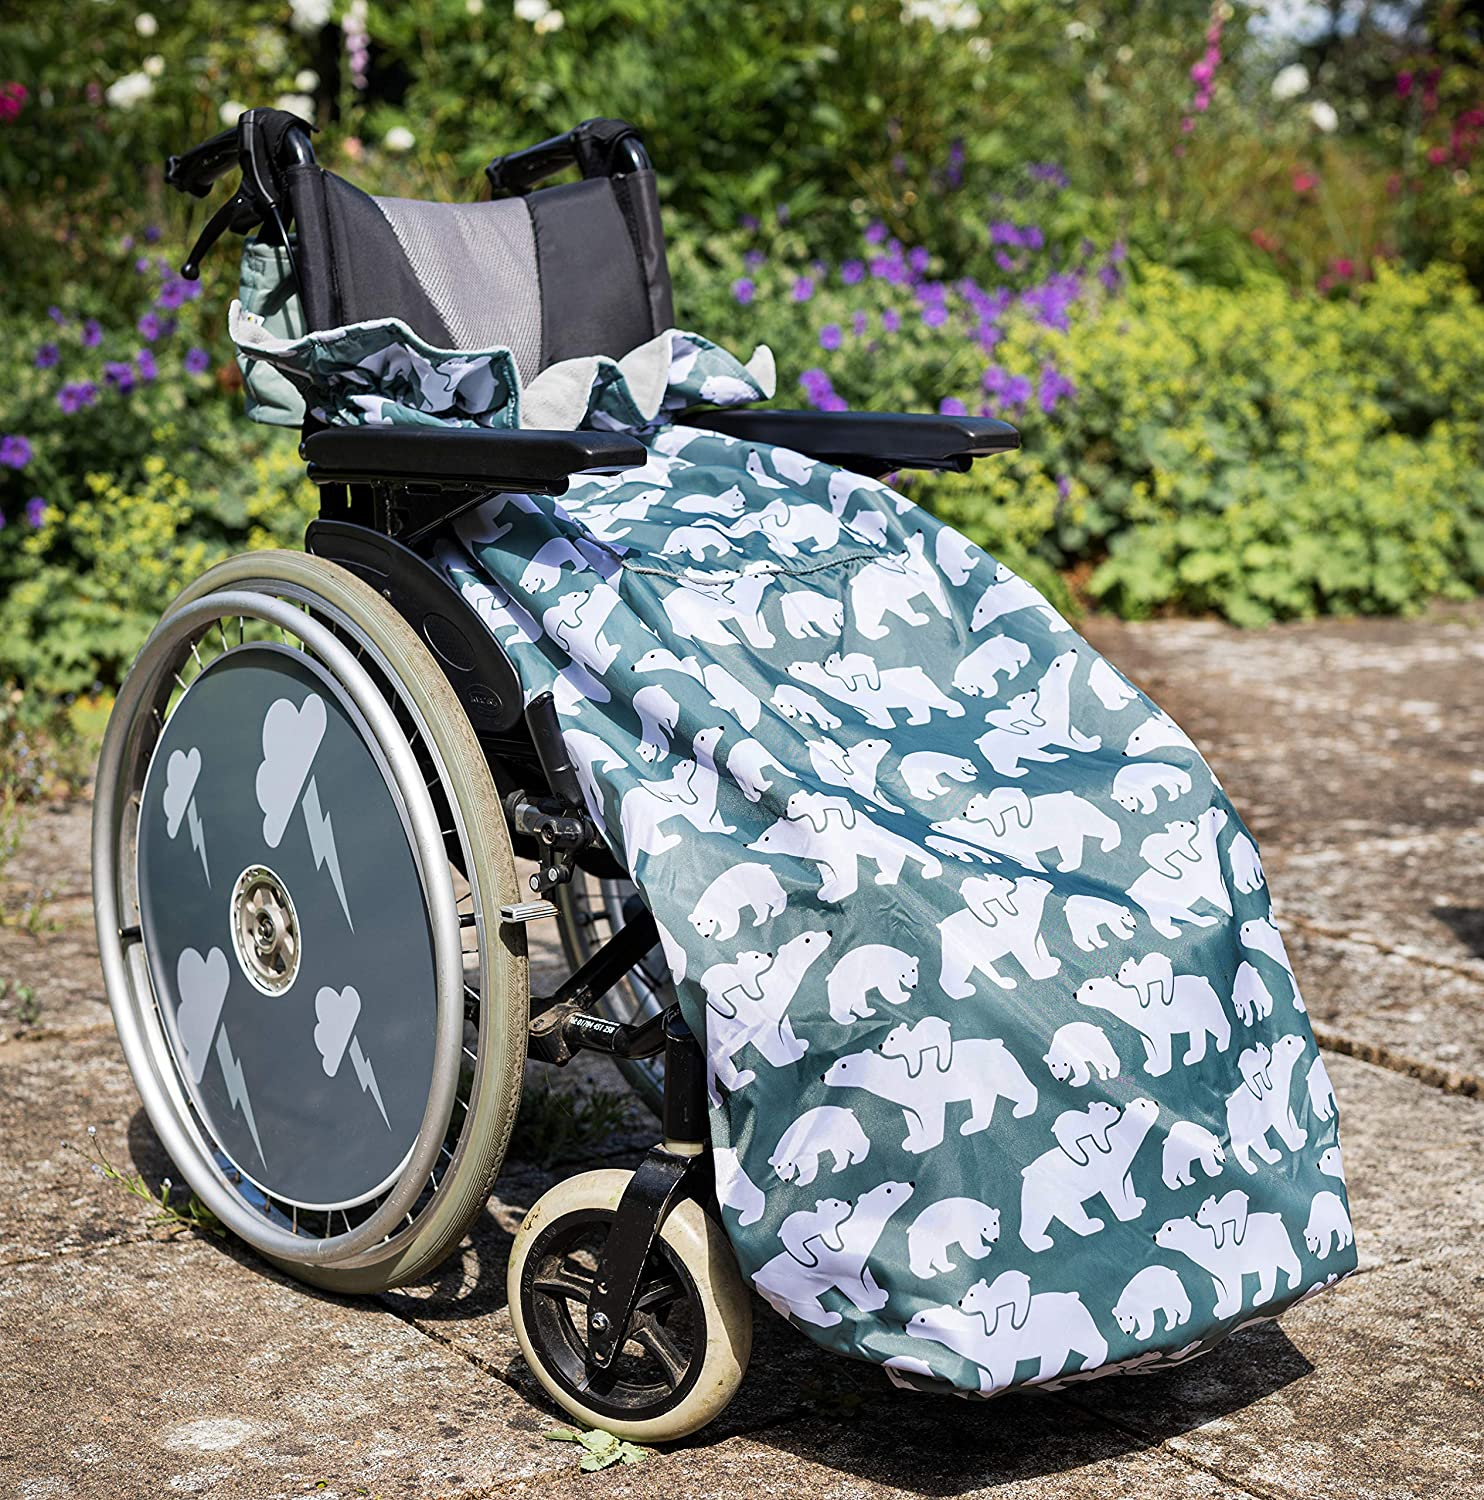 100% Waterproof Fleece Lined Wheelchair Cosy Cover | Universal fit for Manual and Powered wheelchairs | Adult Size (Polar Bear)